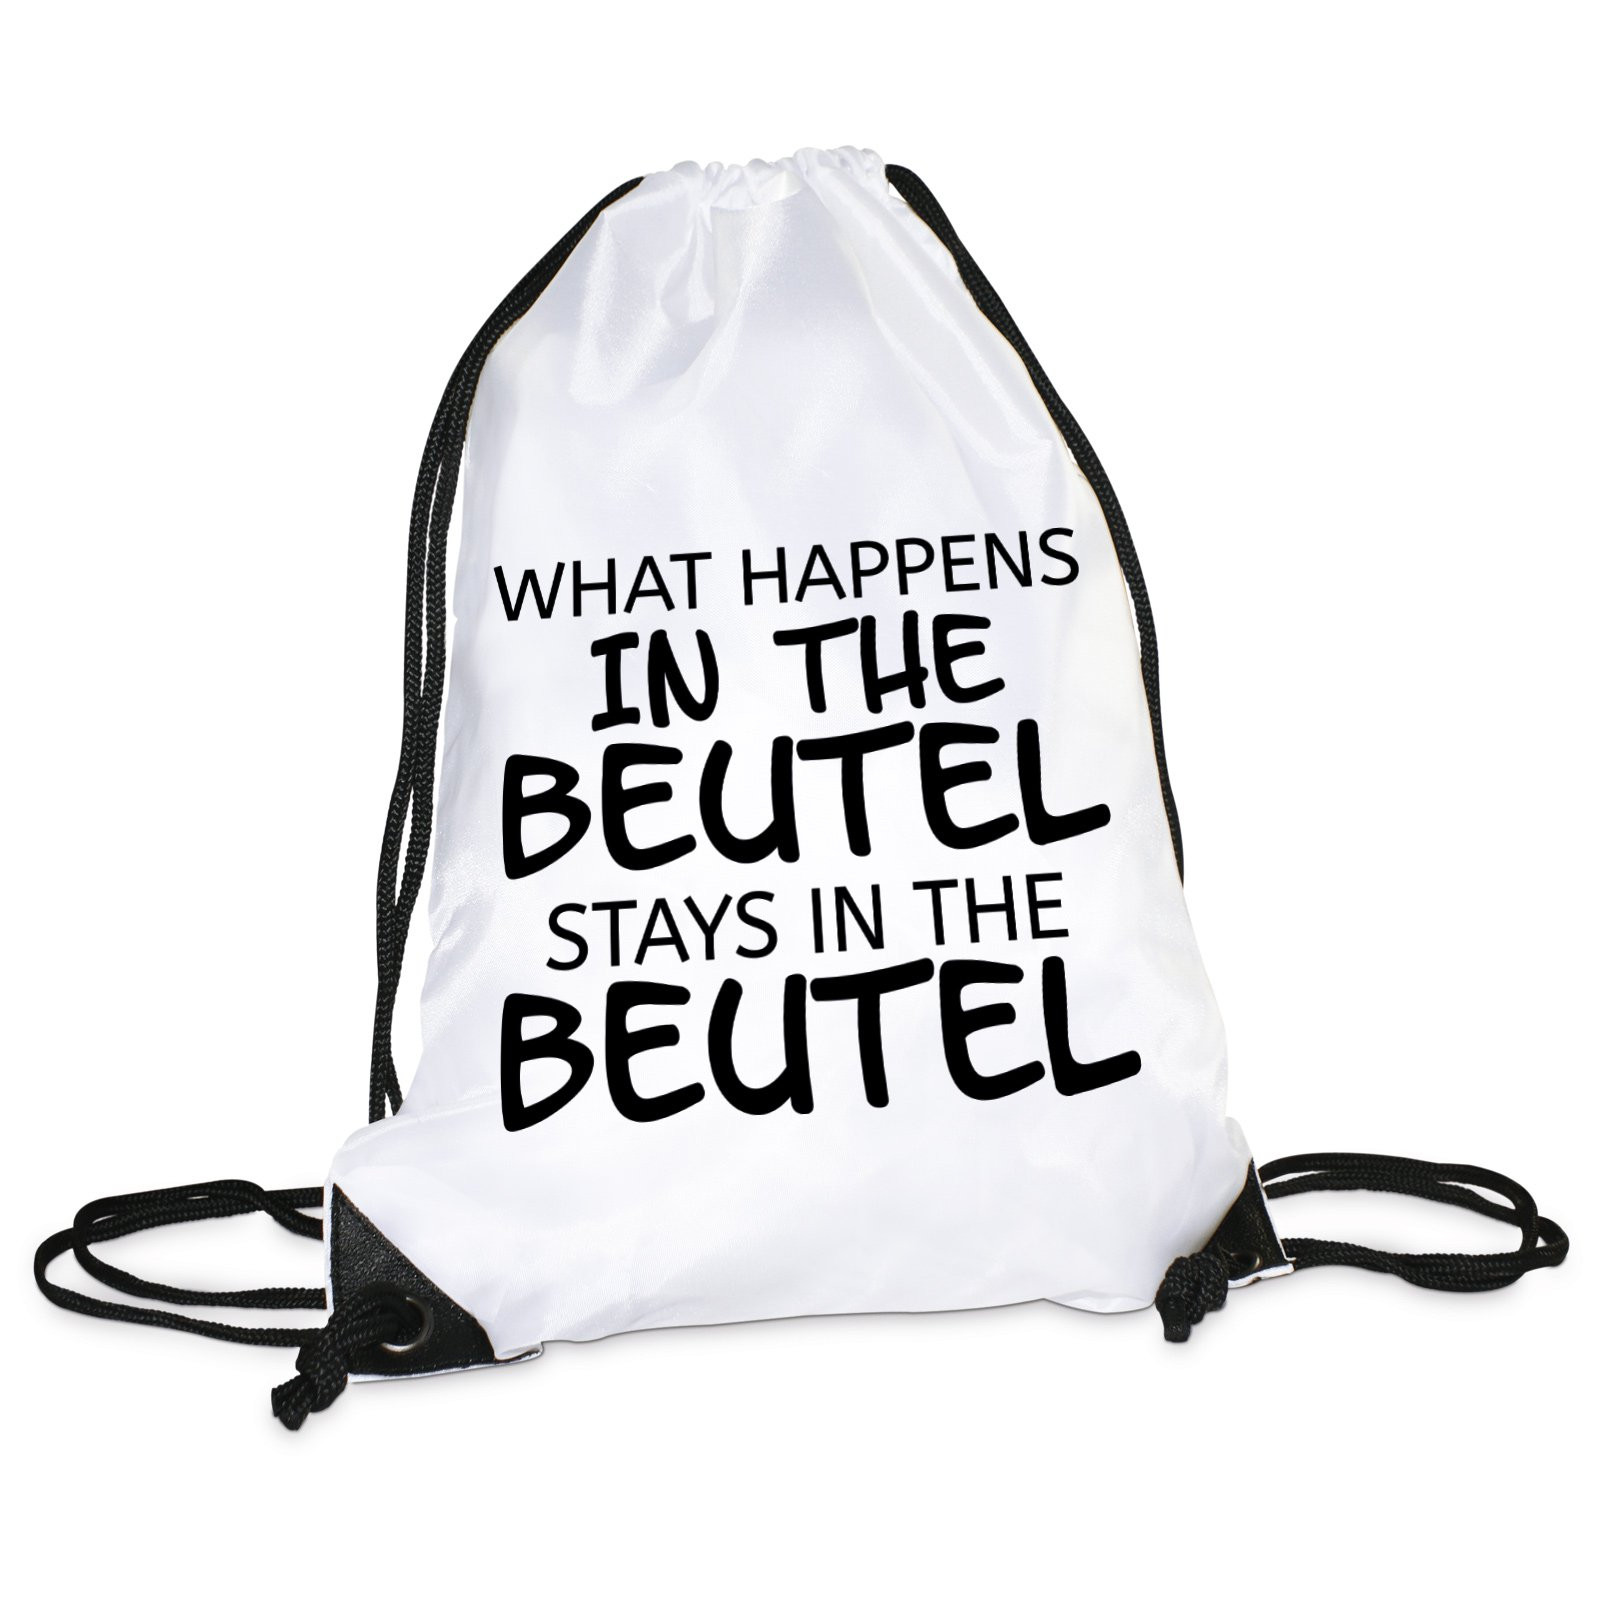 Turnbeutel Modell: What happens in the Beutel